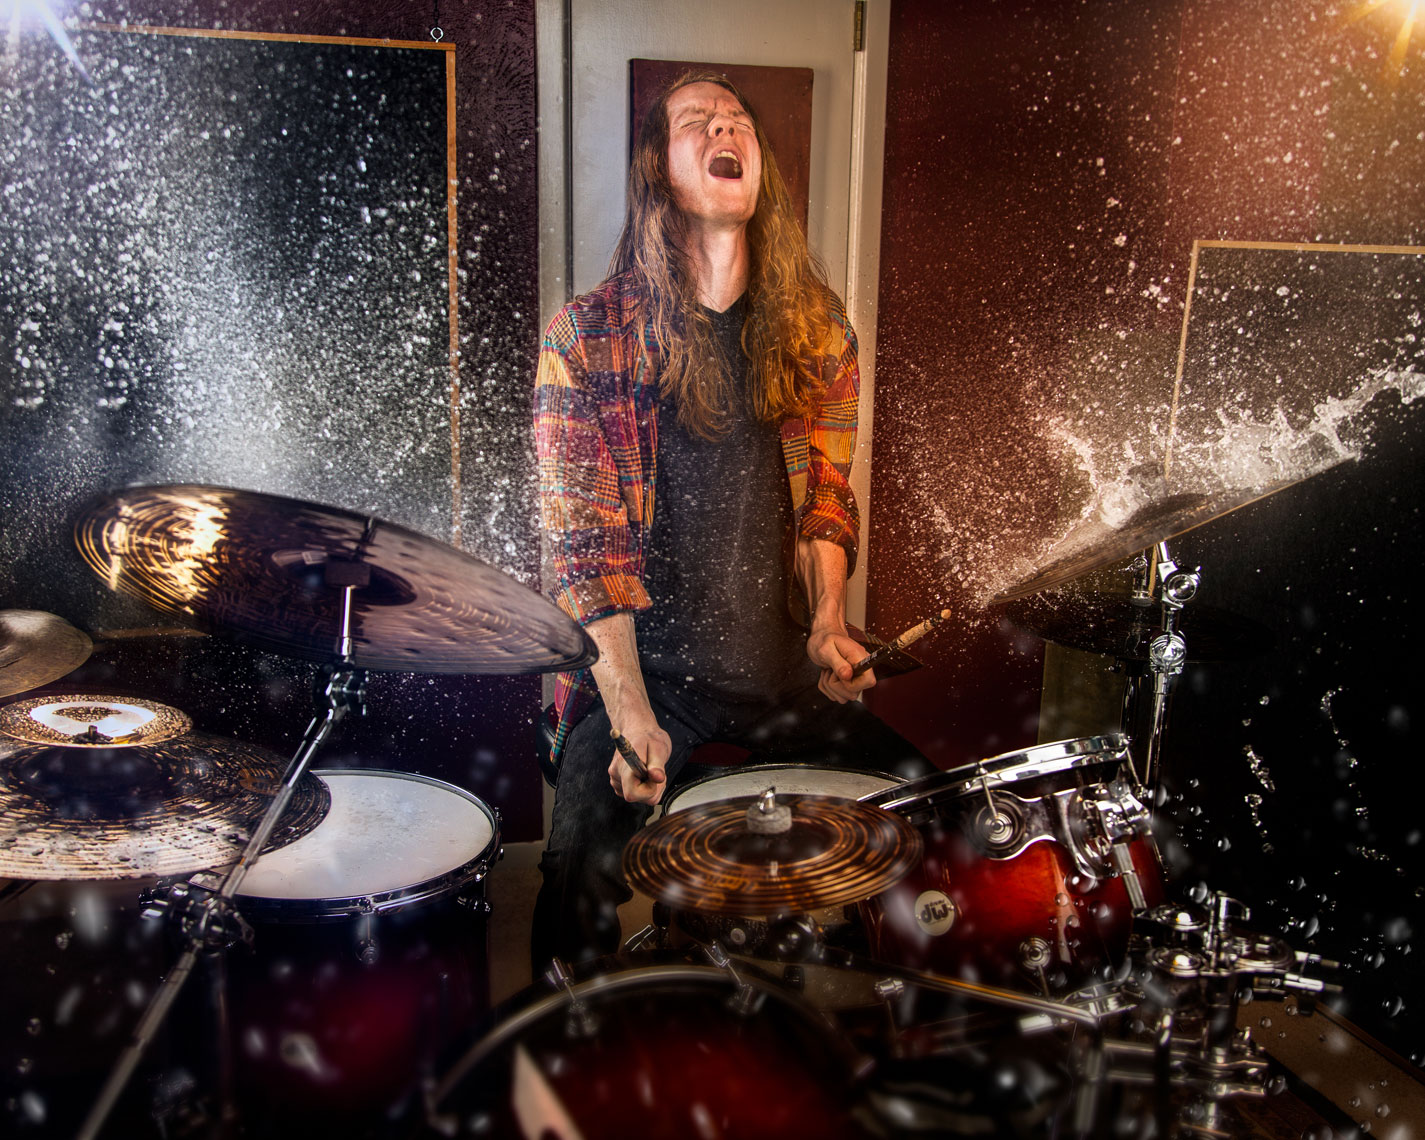 drummer photography | by Kate Voskova